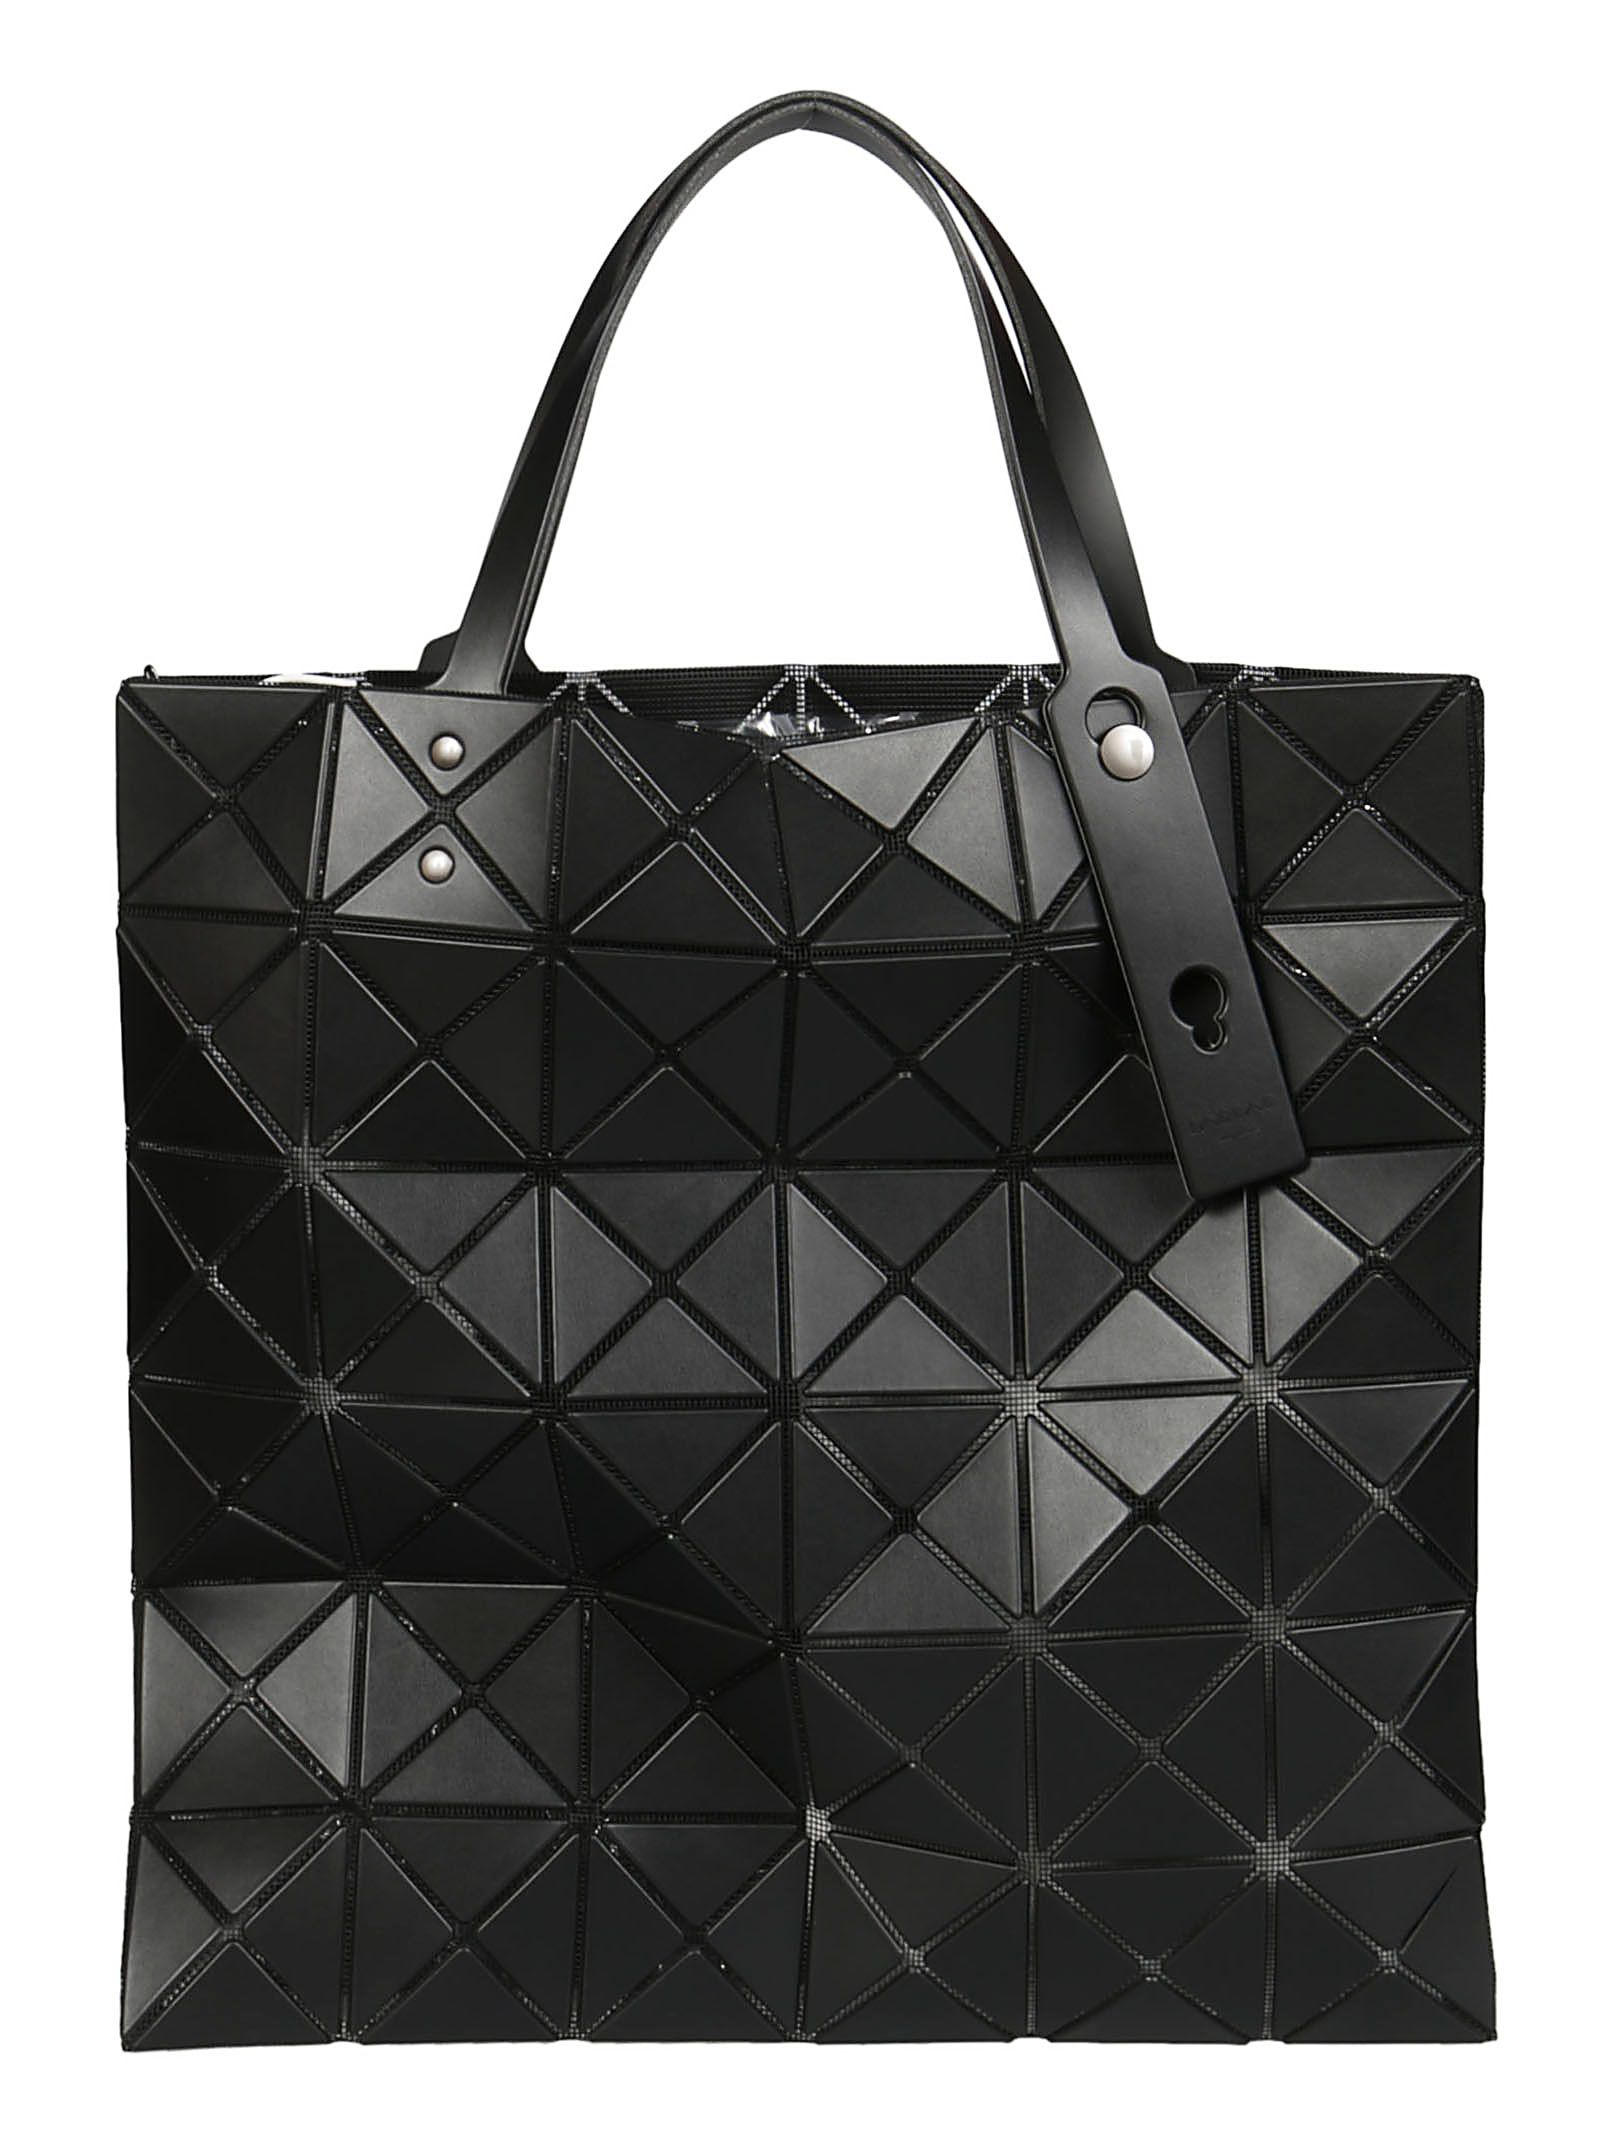 5bc47f4770 Bao Bao Issey Miyake Bao Bao Issey Miyake Lucent Oversized Tote ...